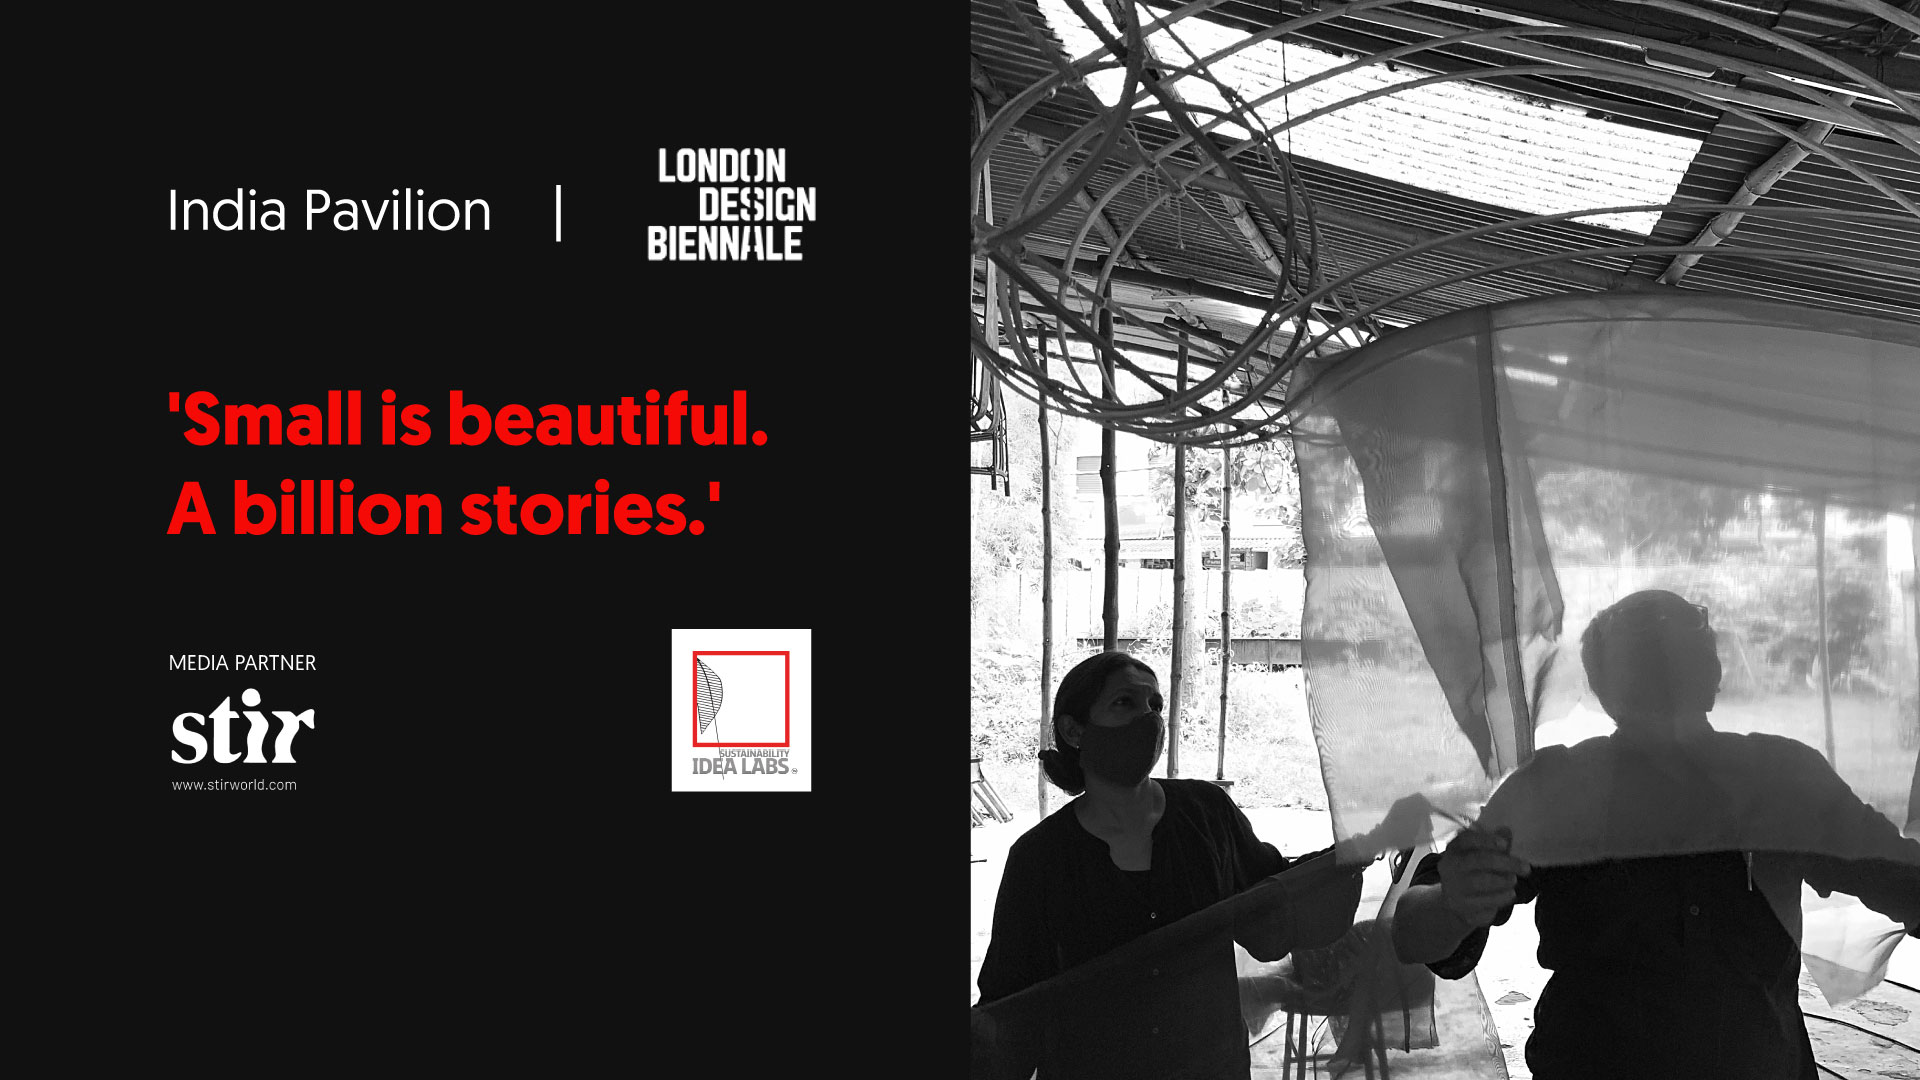 A conversation with the creatives behind 'Small is Beautiful' at LDB 2021